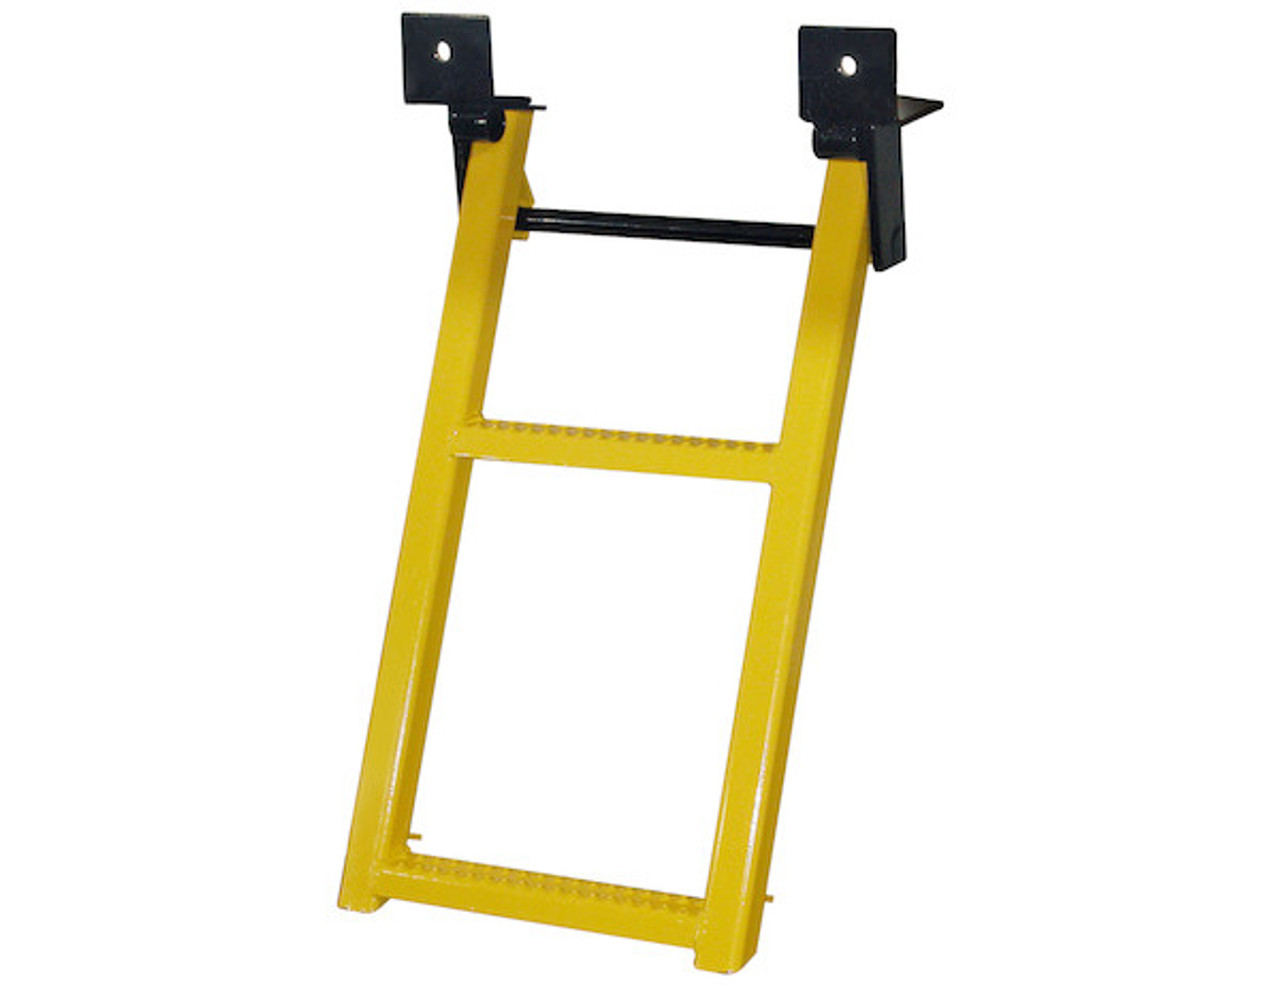 RS2Y Buyer's 2-Rung Yellow Retractable Truck Steps With Nonslip Tread - 17.38 X 30.25 Inch